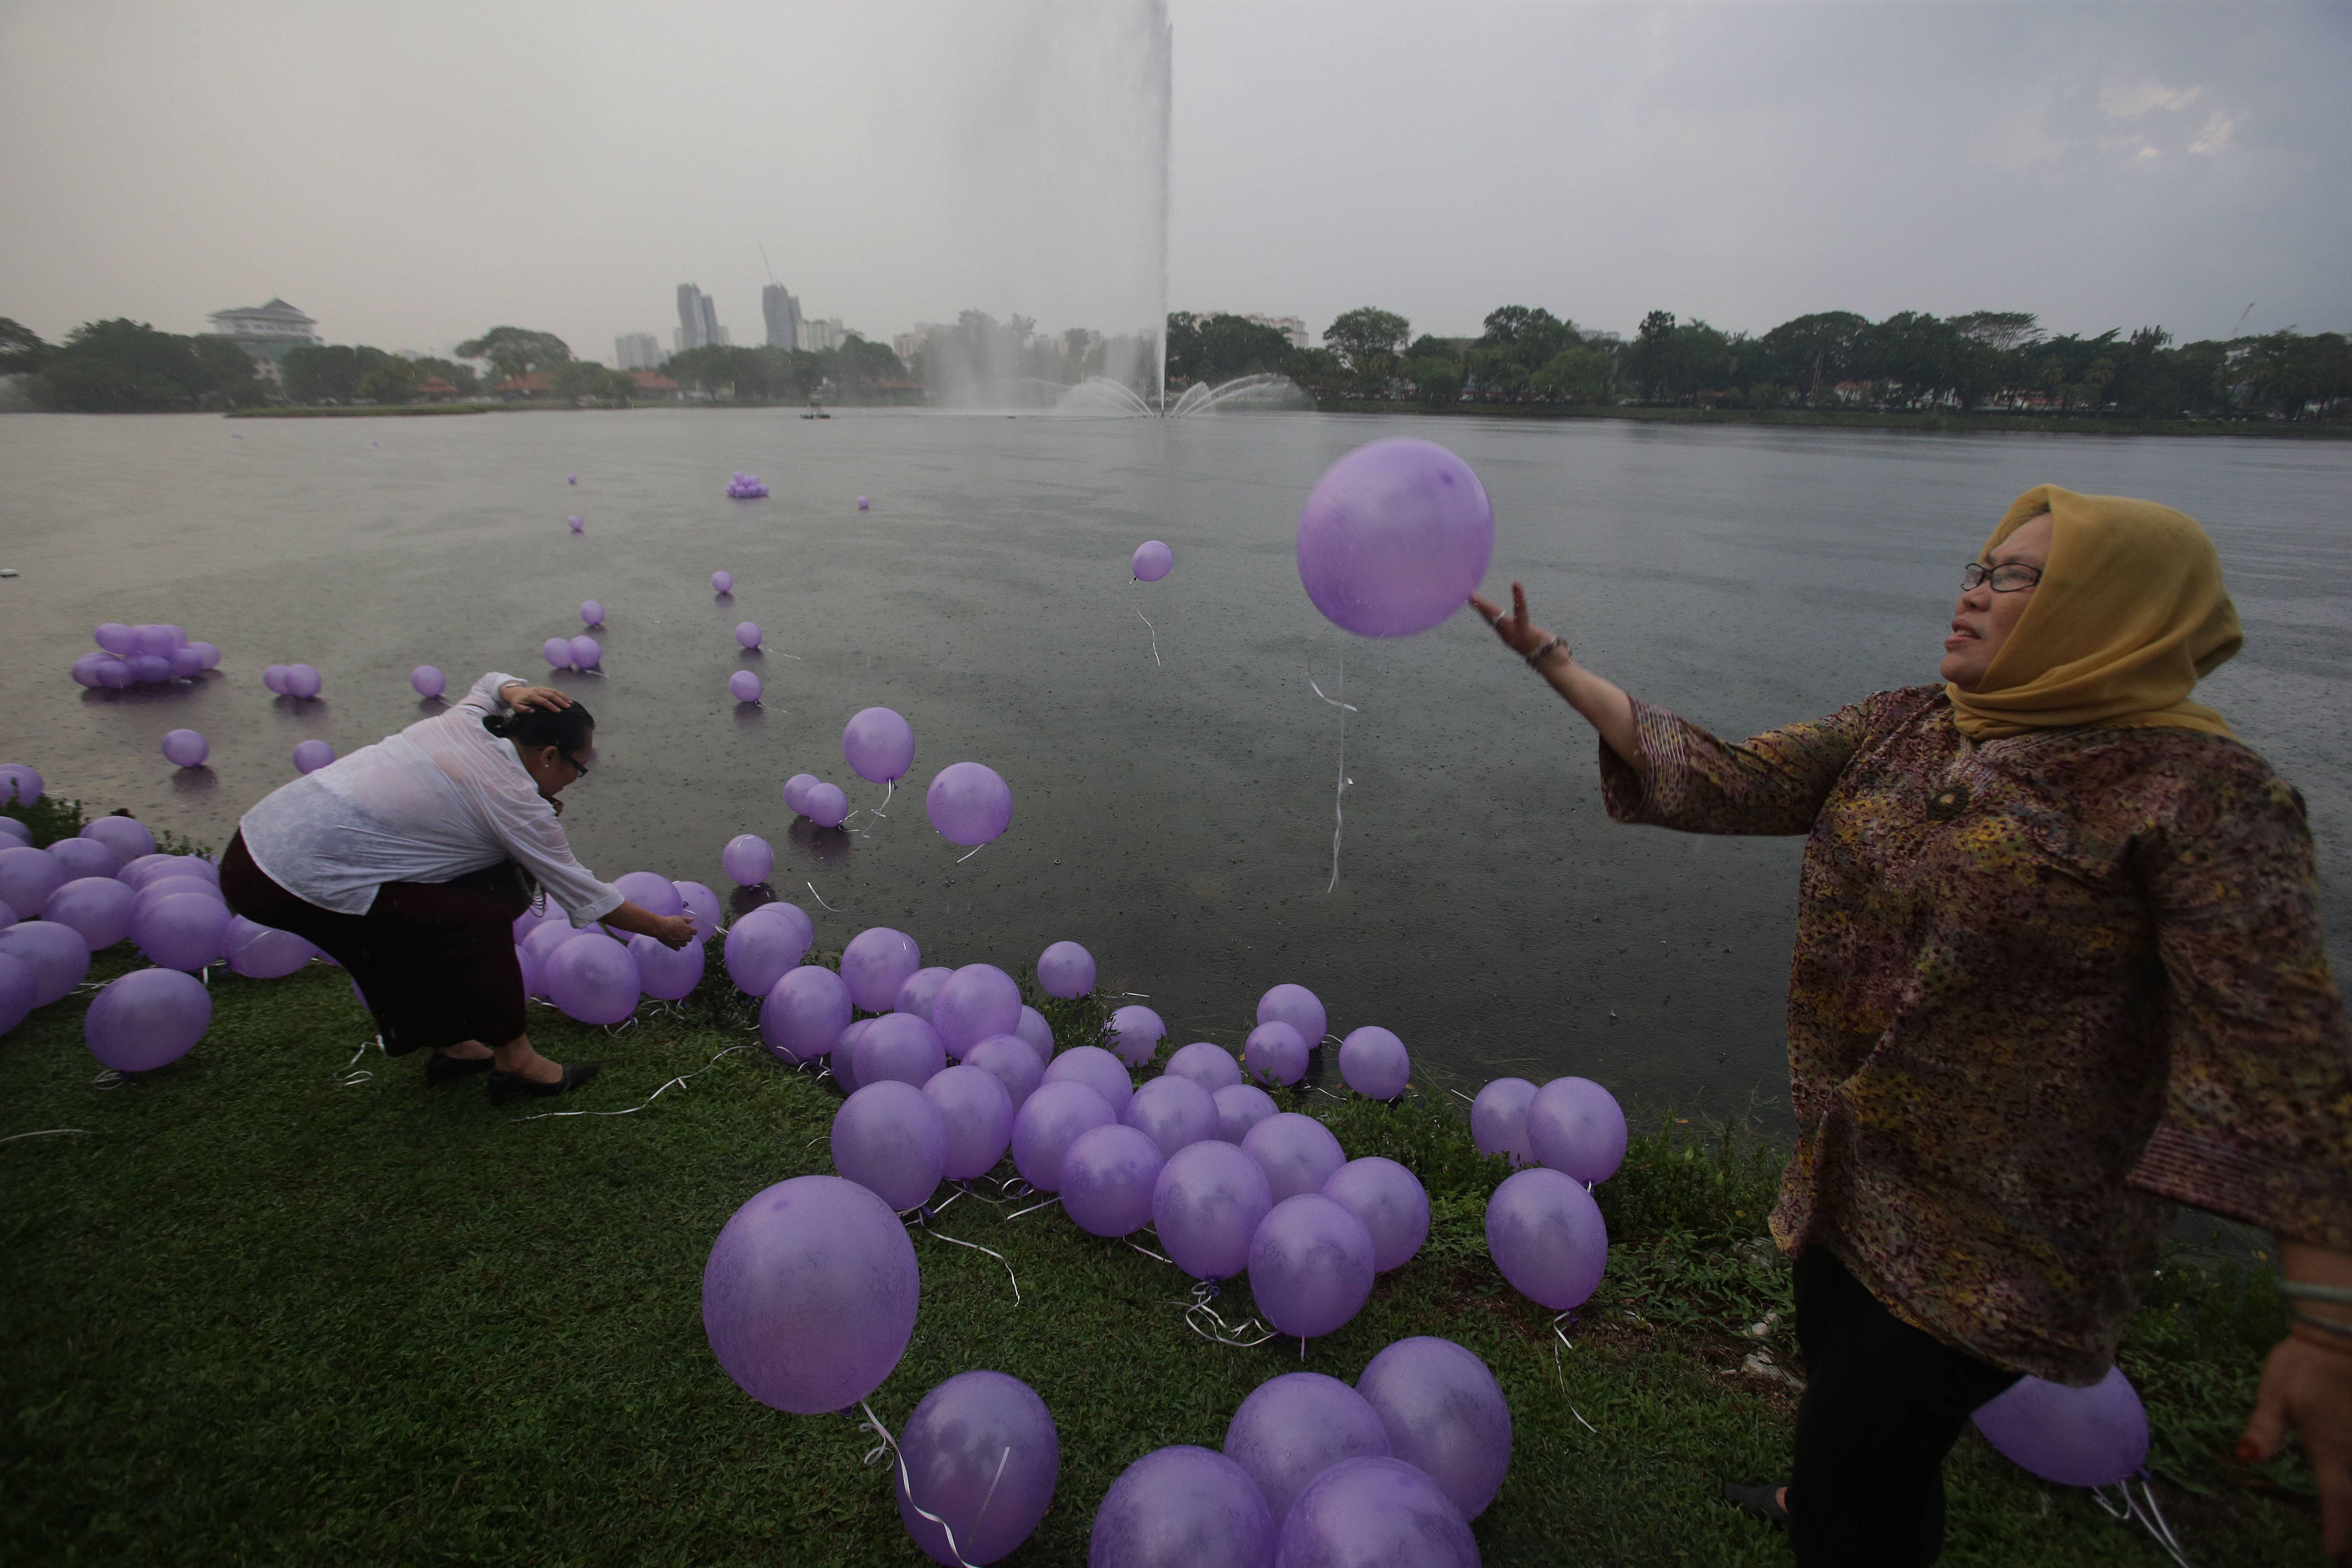 Women release balloons to symbolize their prayers for the 239 passengers on board the missing Malaysia Airlines flight MH370, at a park at Kuala Lumpur, Malaysia, Sunday. A new batch of relatives from China has arrived today to seek answers of what happened to their loved one on board flight MH370.